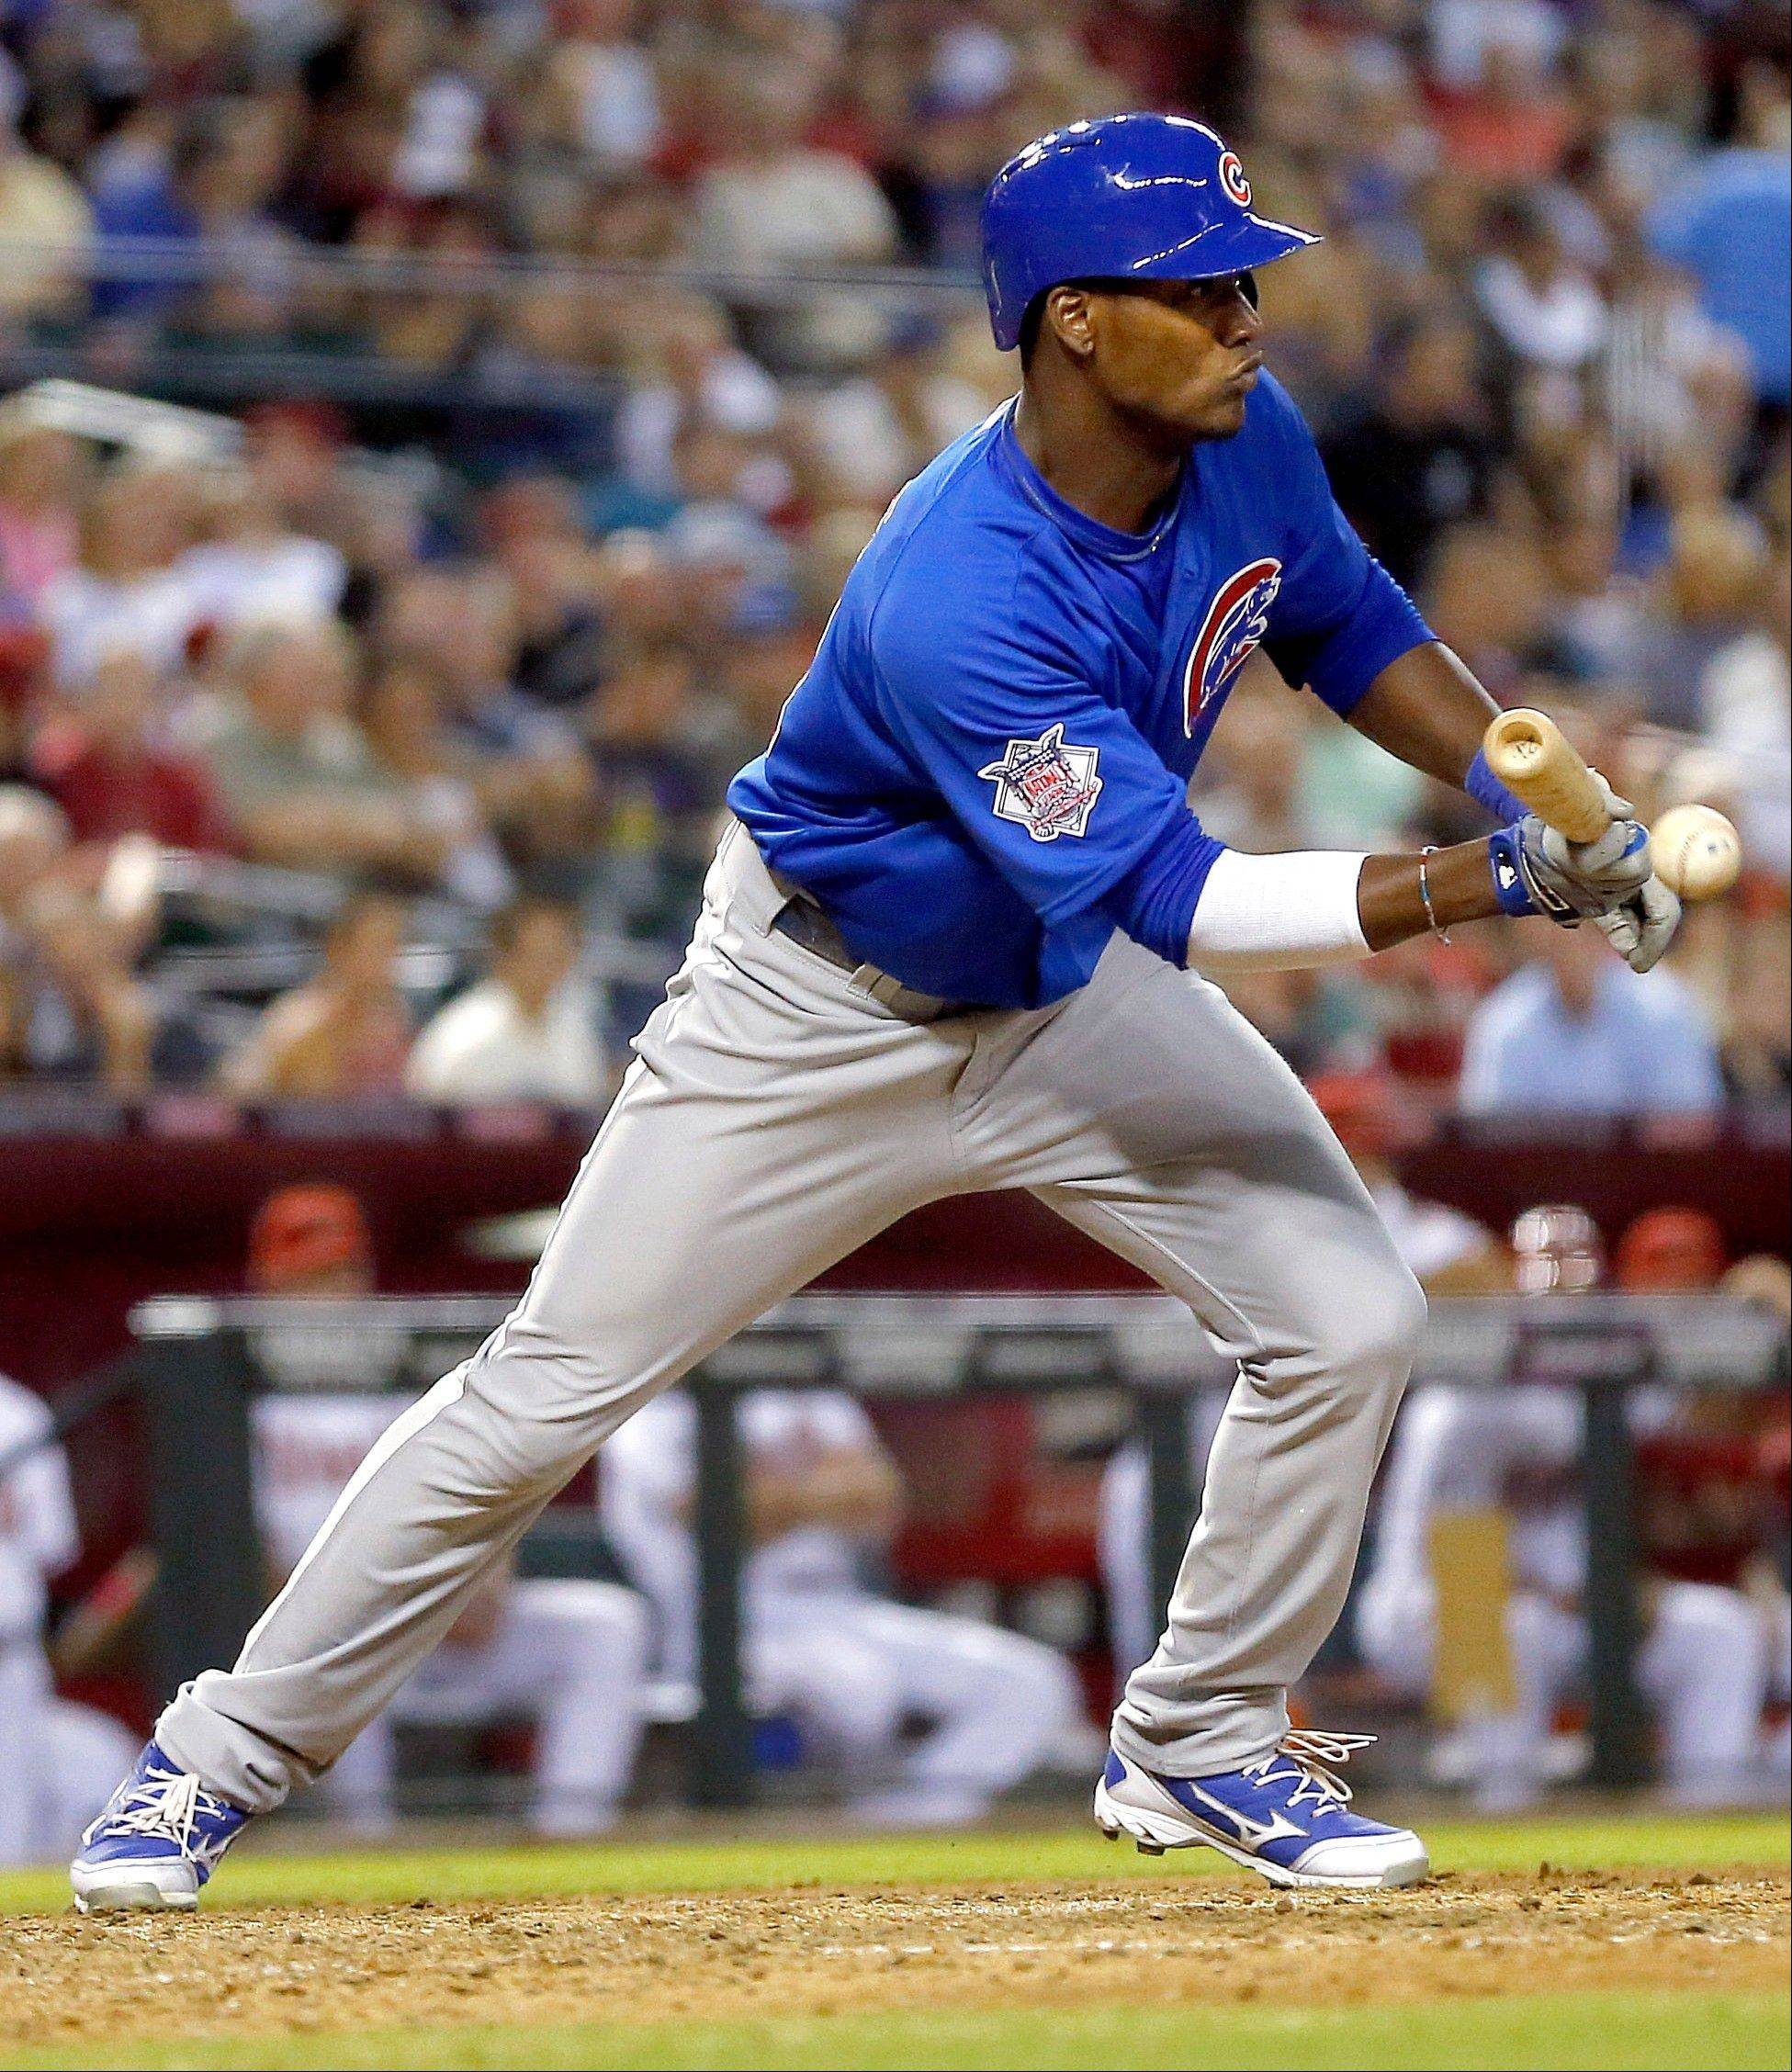 Junior Lake bunts for a base hit against the Arizona Diamondbacks during the sixth inning of a baseball game, Thursday, July 25, 2013, in Phoenix.